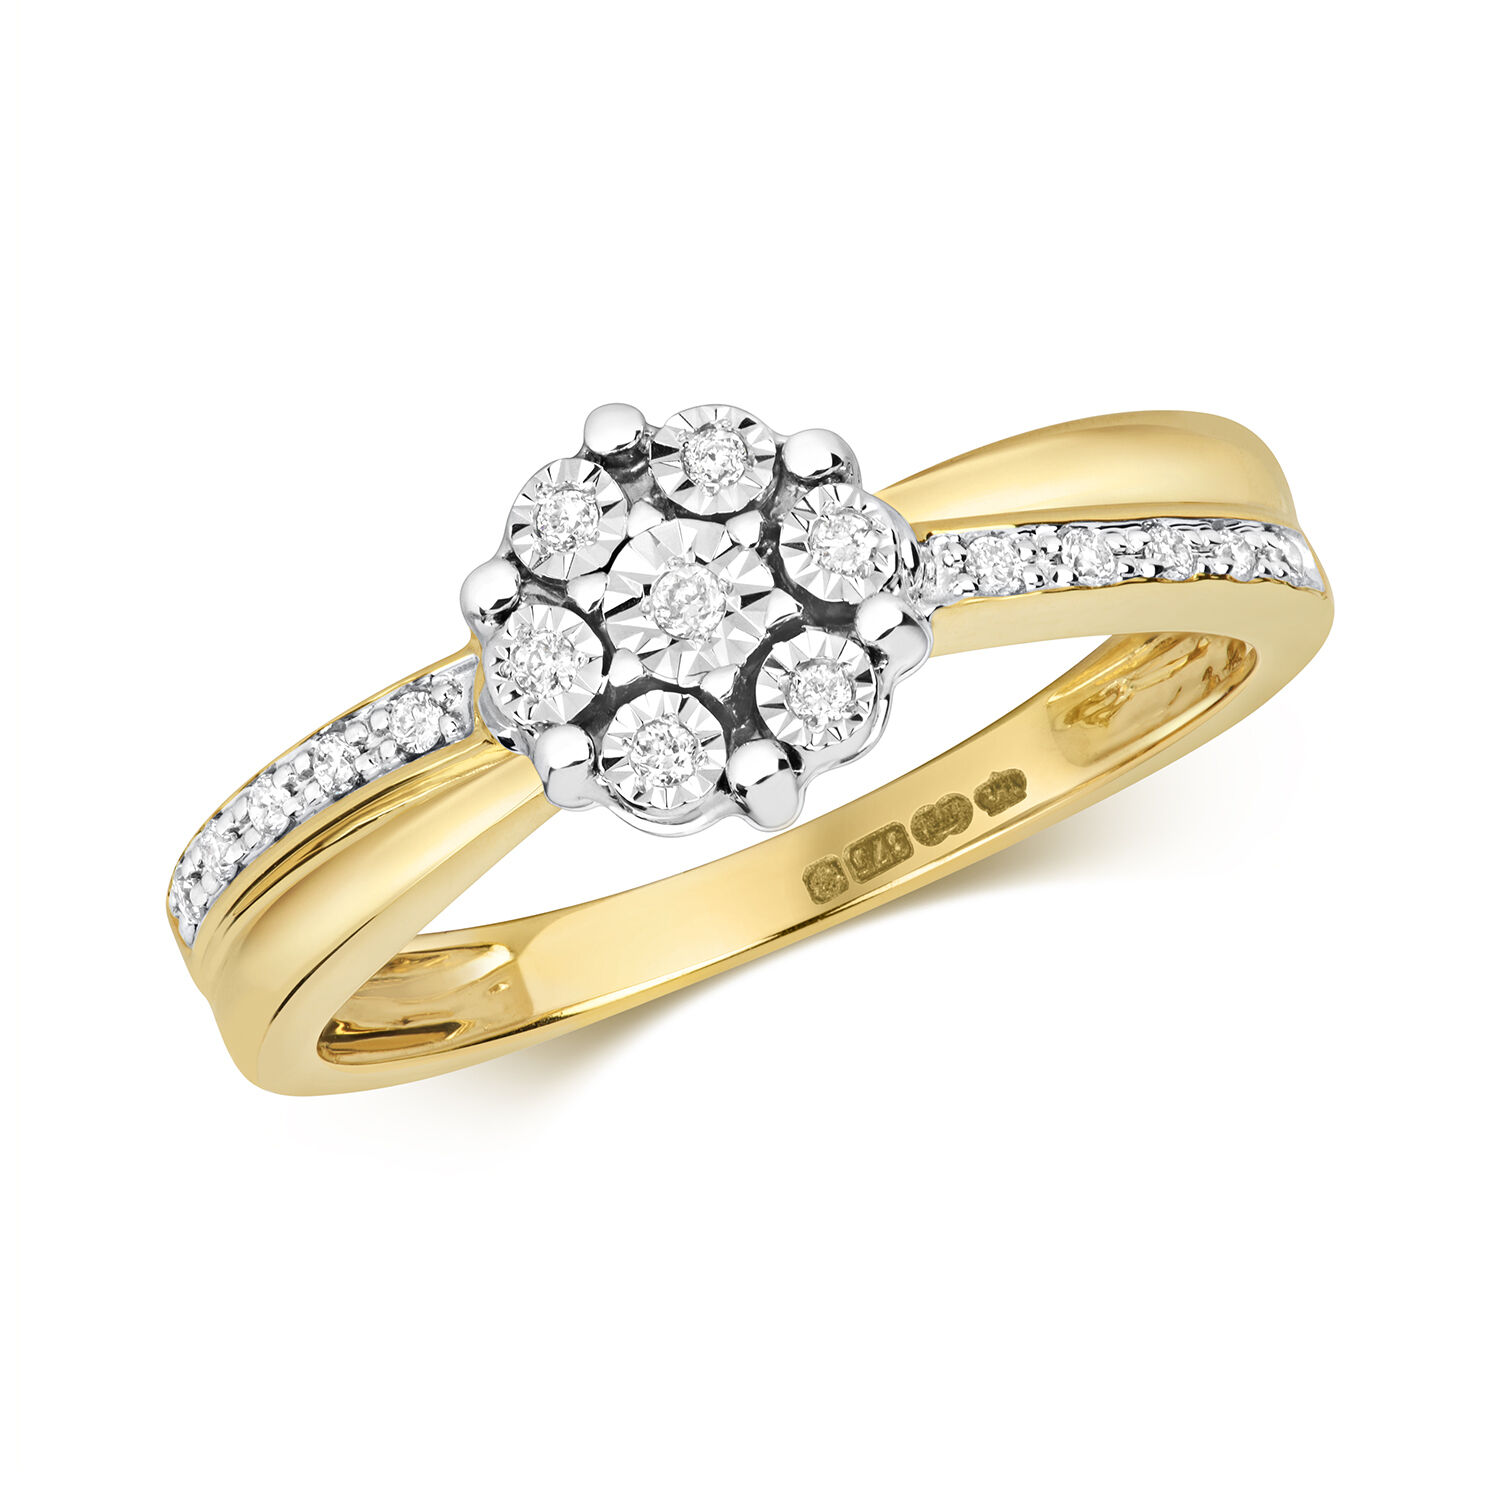 Diamond Ring Yellow gold Cluster Engagement large Sizes R - Z Certificate